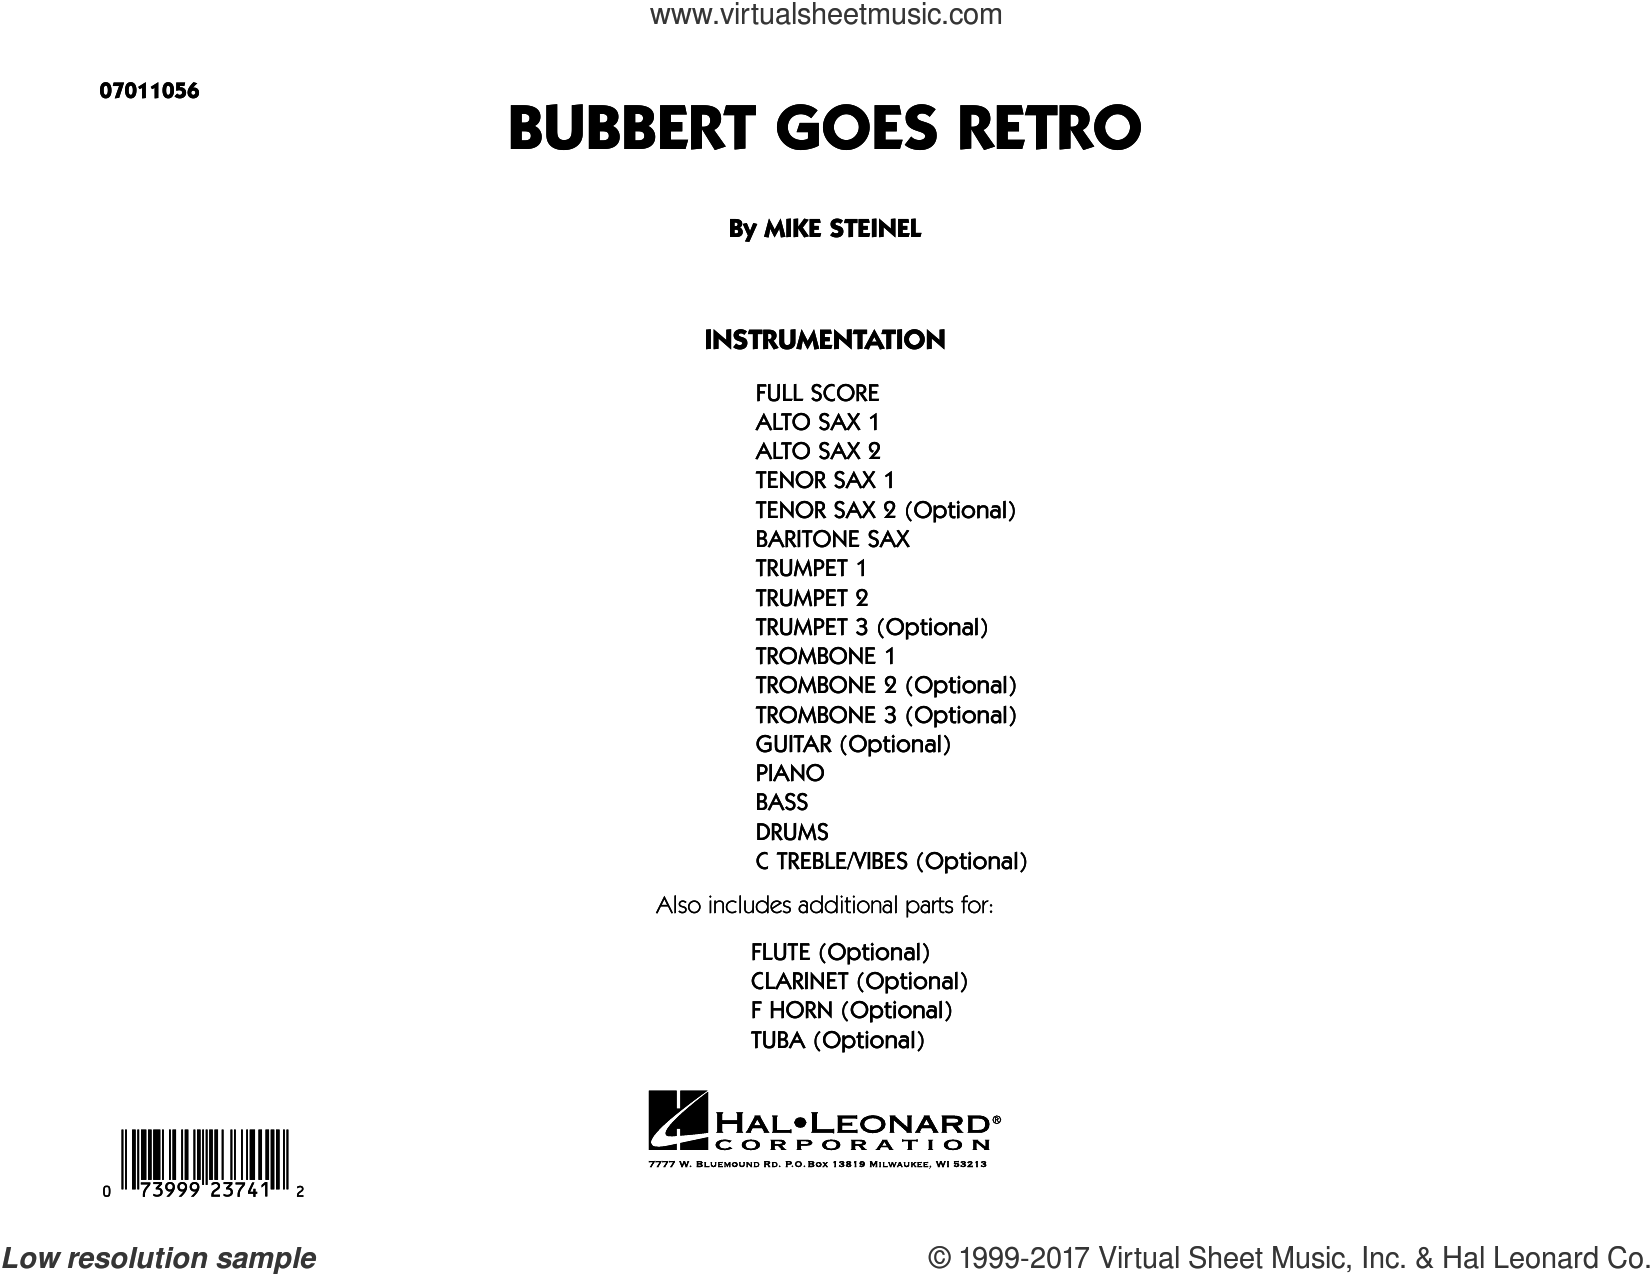 Bubbert Goes Retro (COMPLETE) sheet music for jazz band by Mike Steinel, intermediate skill level